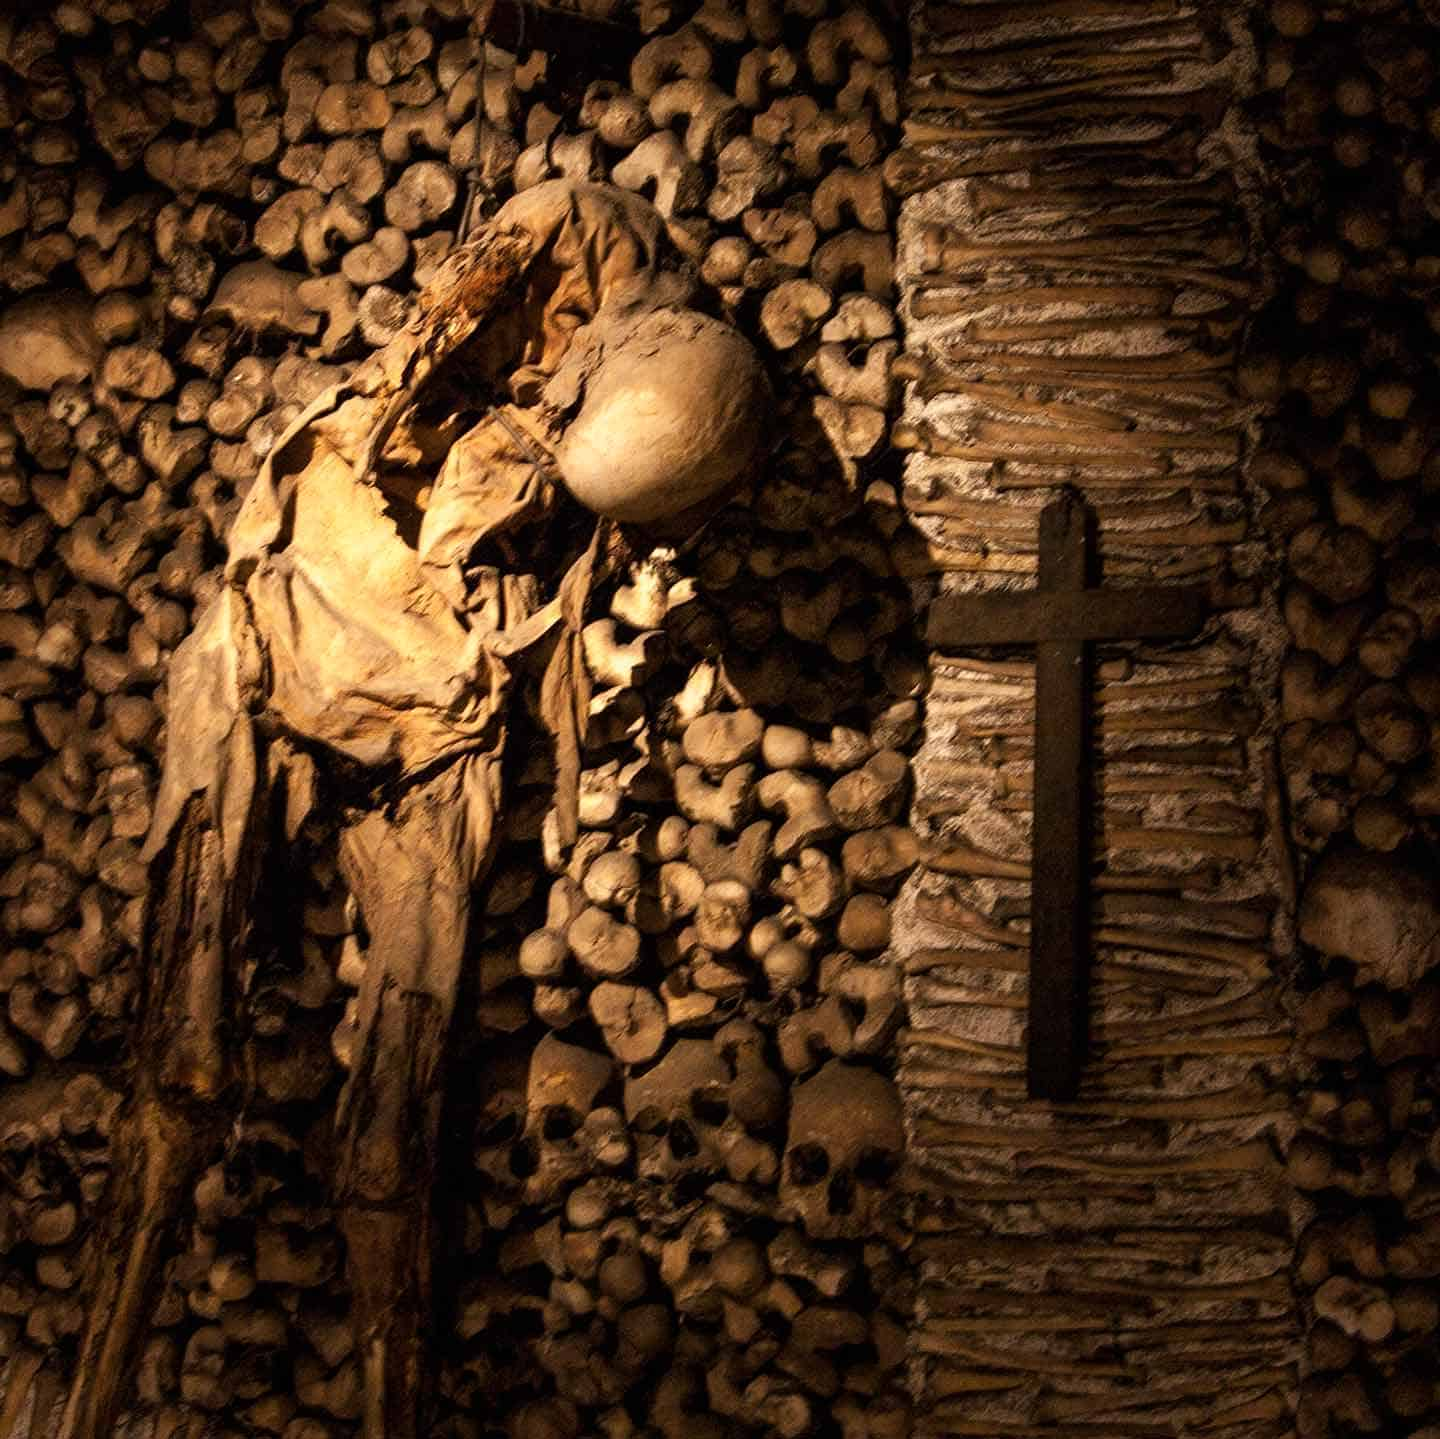 Image of a desiccated corpse in the Chapel of Bones in Evora